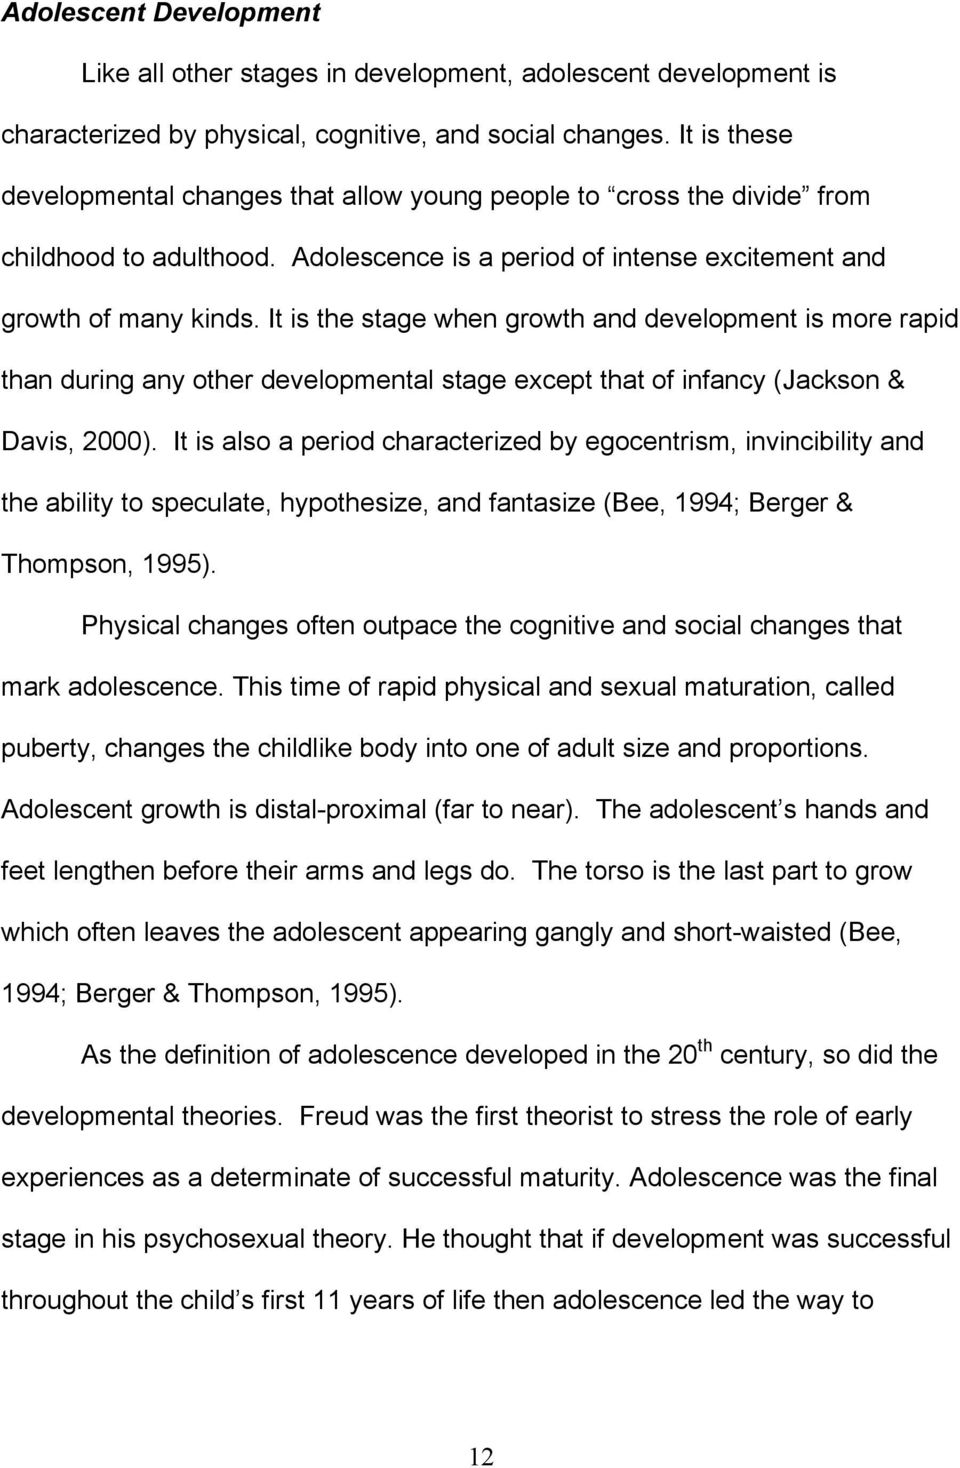 It is the stage when growth and development is more rapid than during any other developmental stage except that of infancy (Jackson & Davis, 2000).